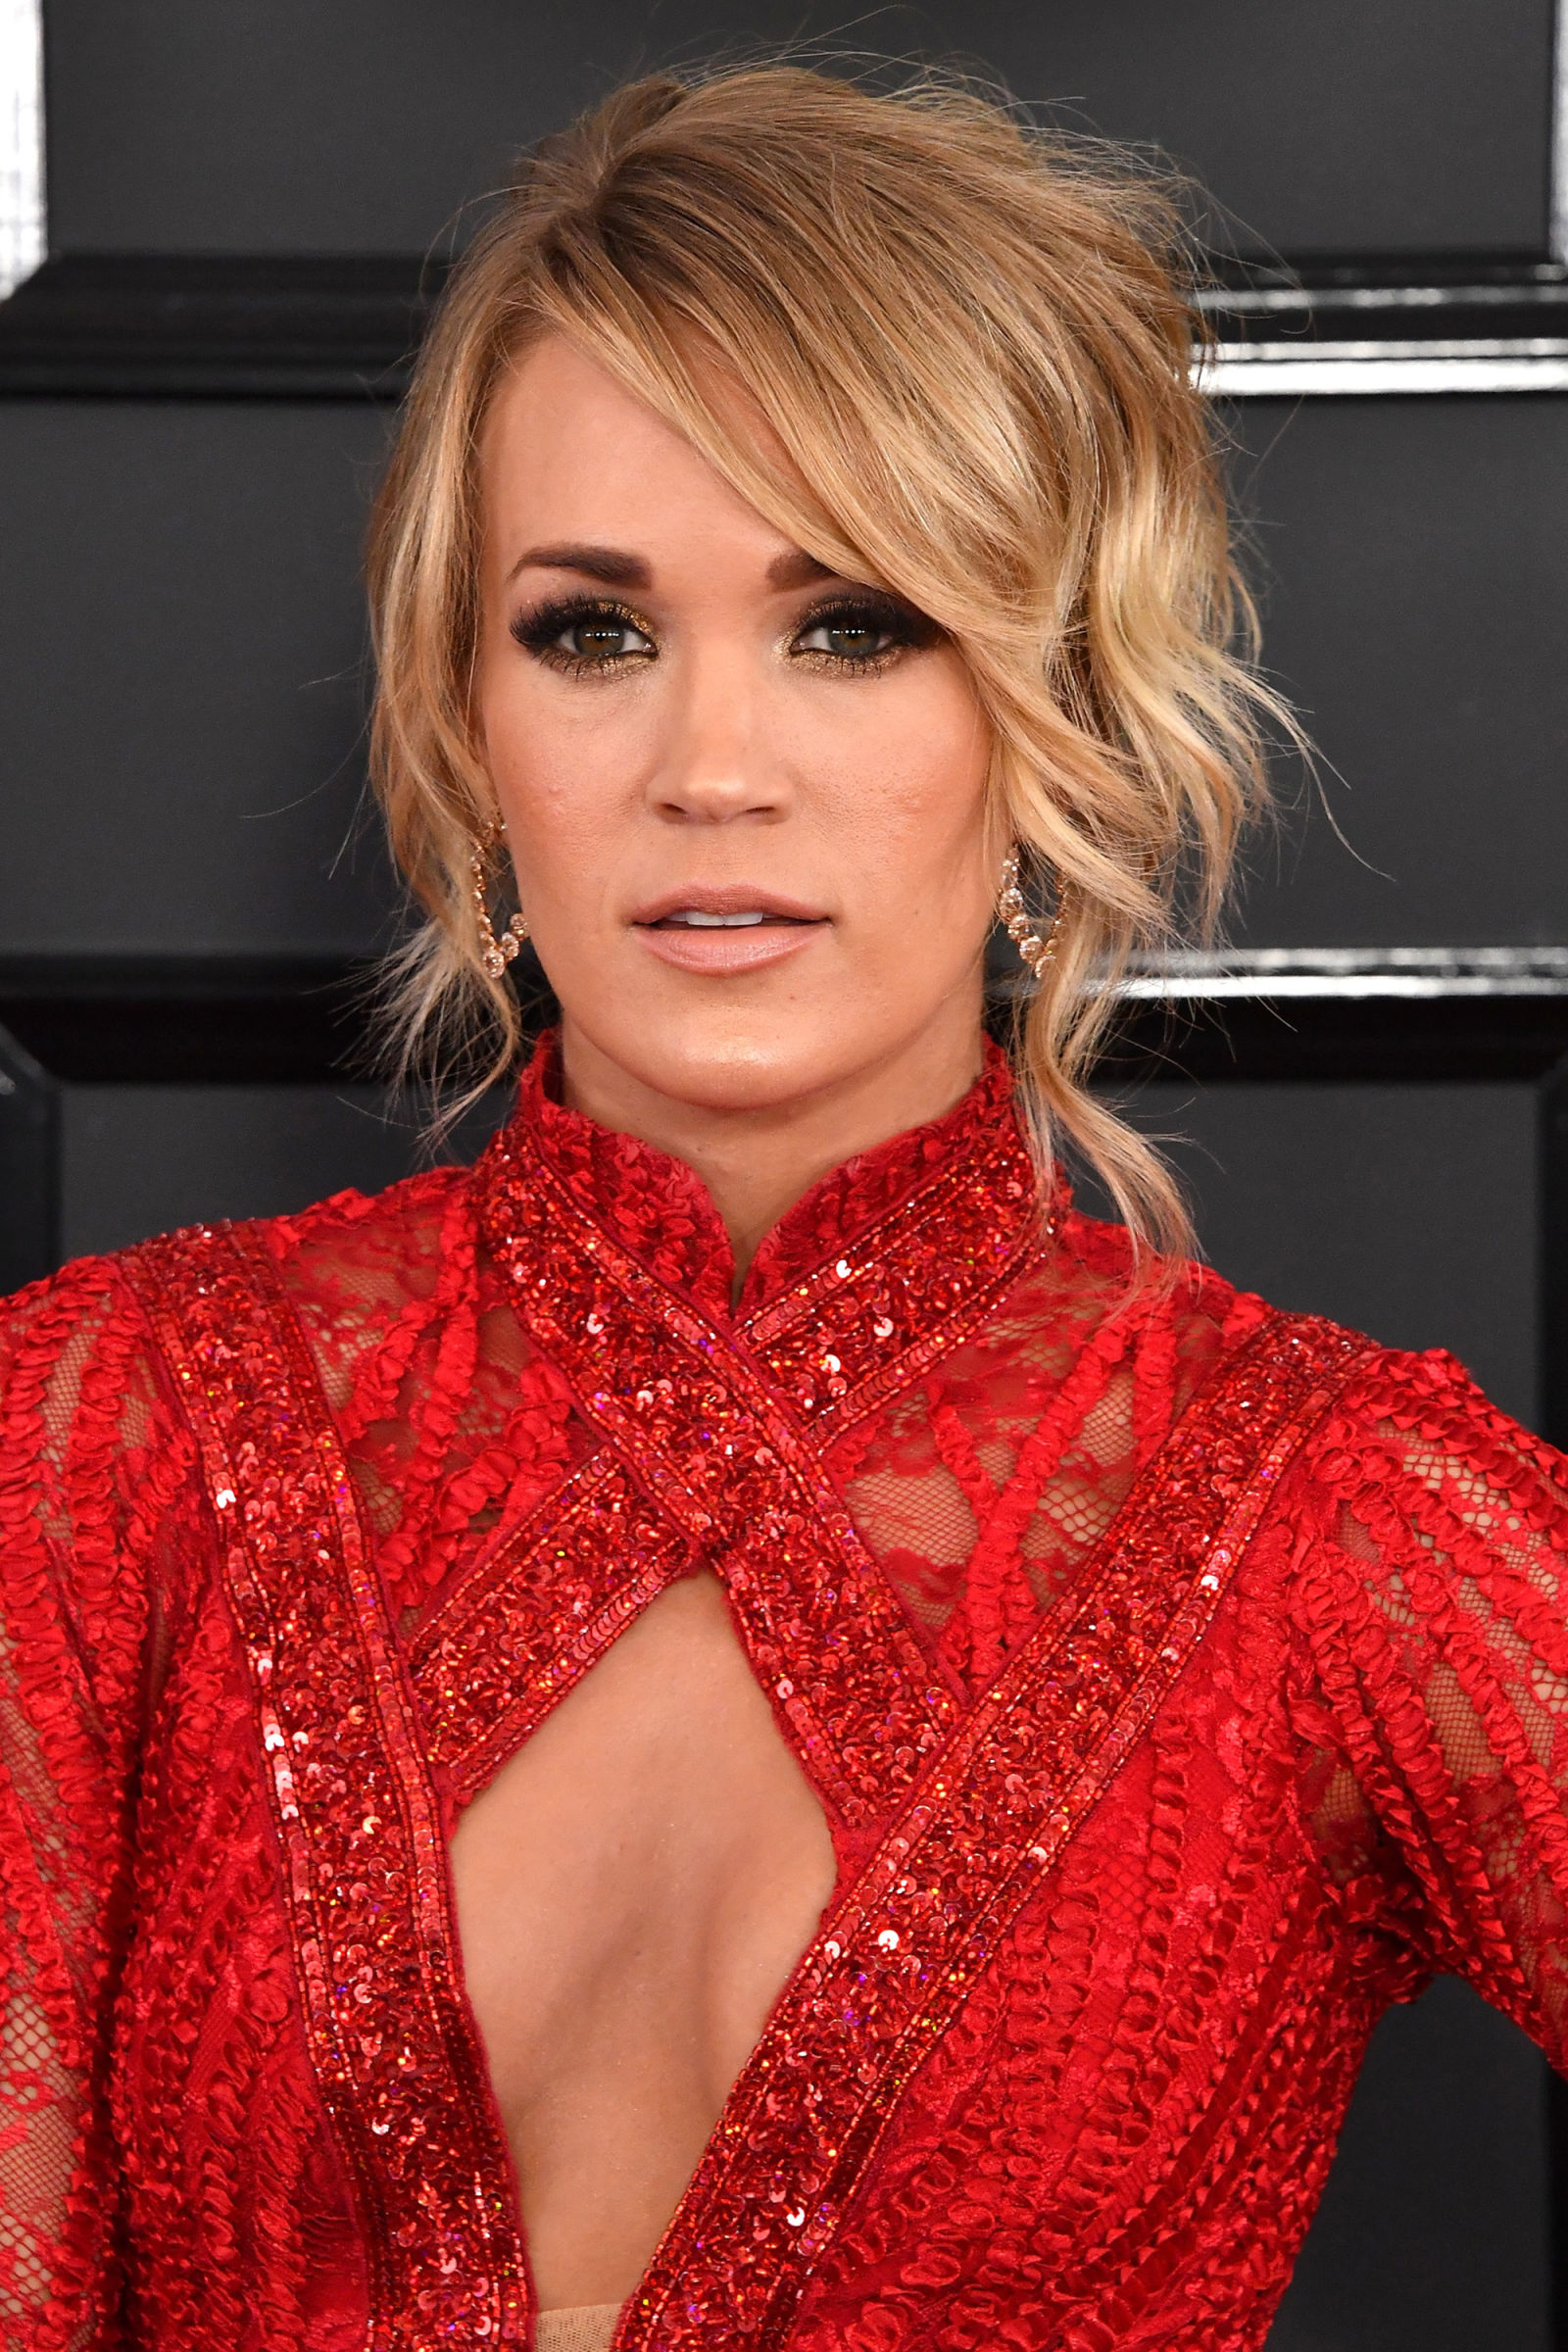 CARRIE UNDERWOOD messy updo hairstyles 2017